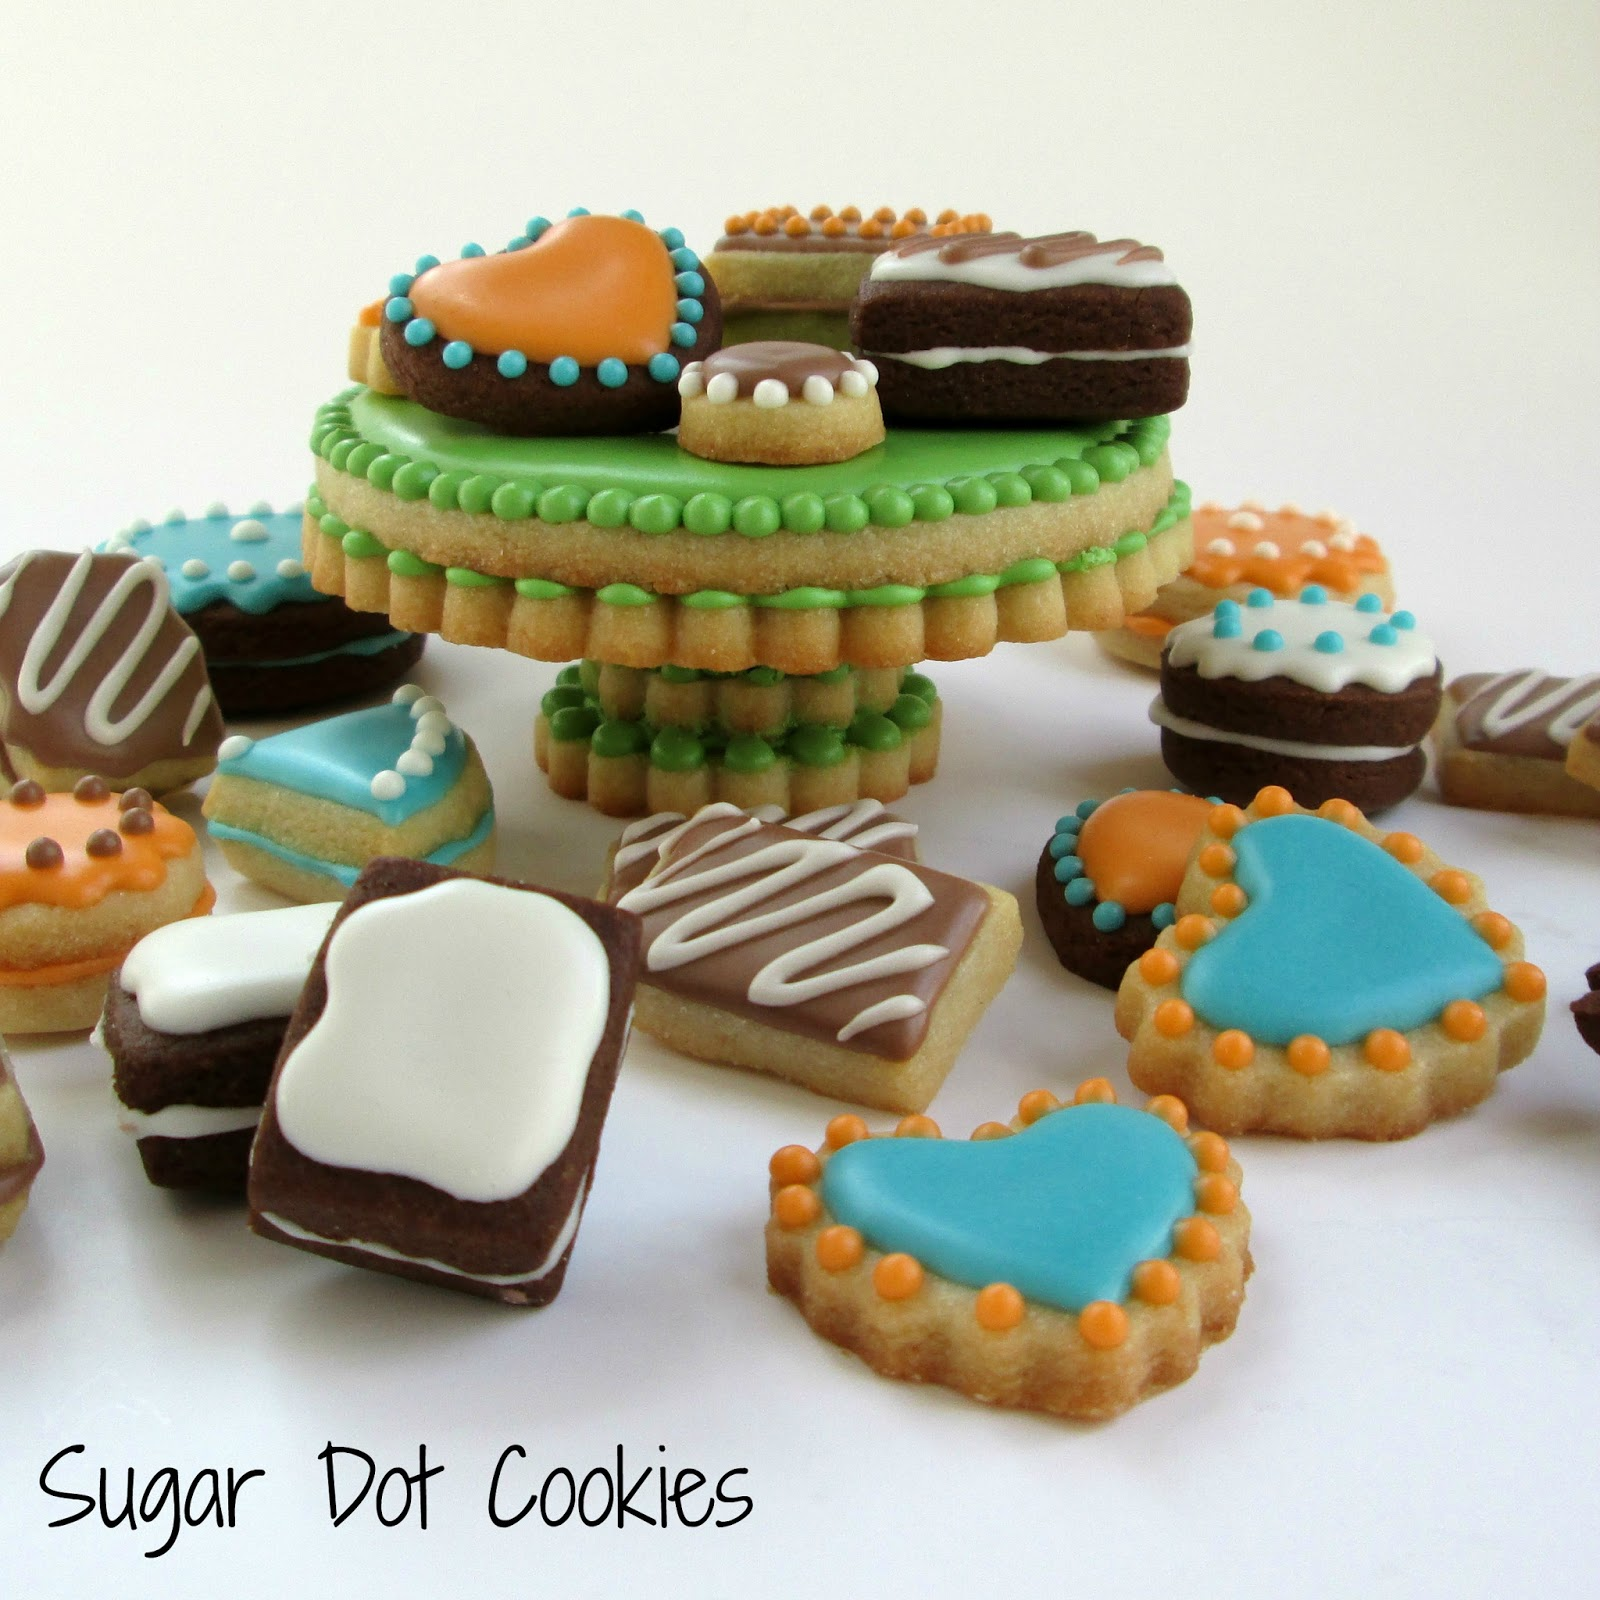 Cake Decorating Classes In Md : Chocolate and vanilla dough!